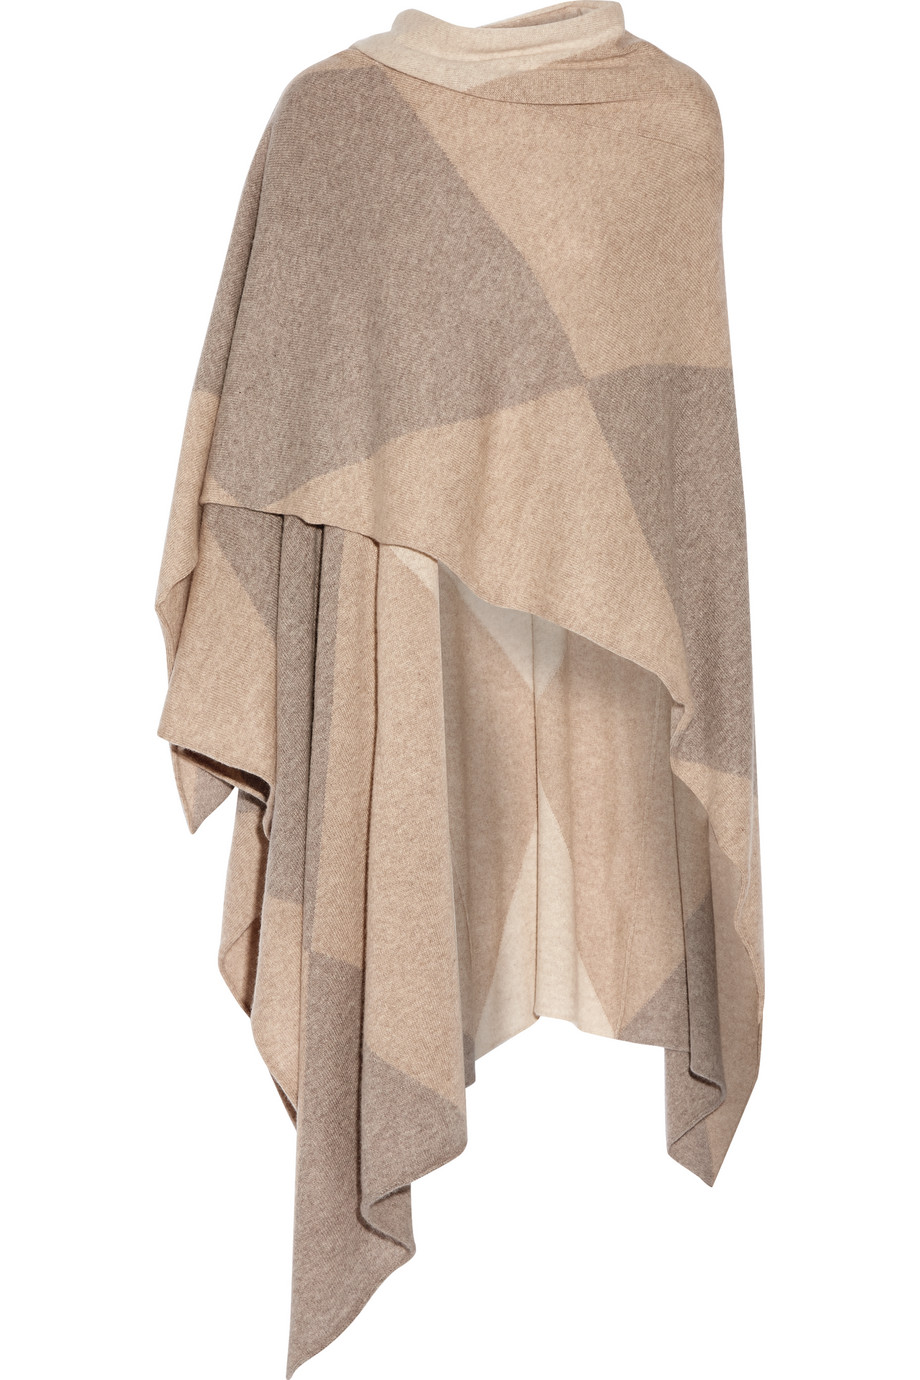 Fulford Color-Block Cashmere Wrap, Madeleine Thompson, Beige, Women's